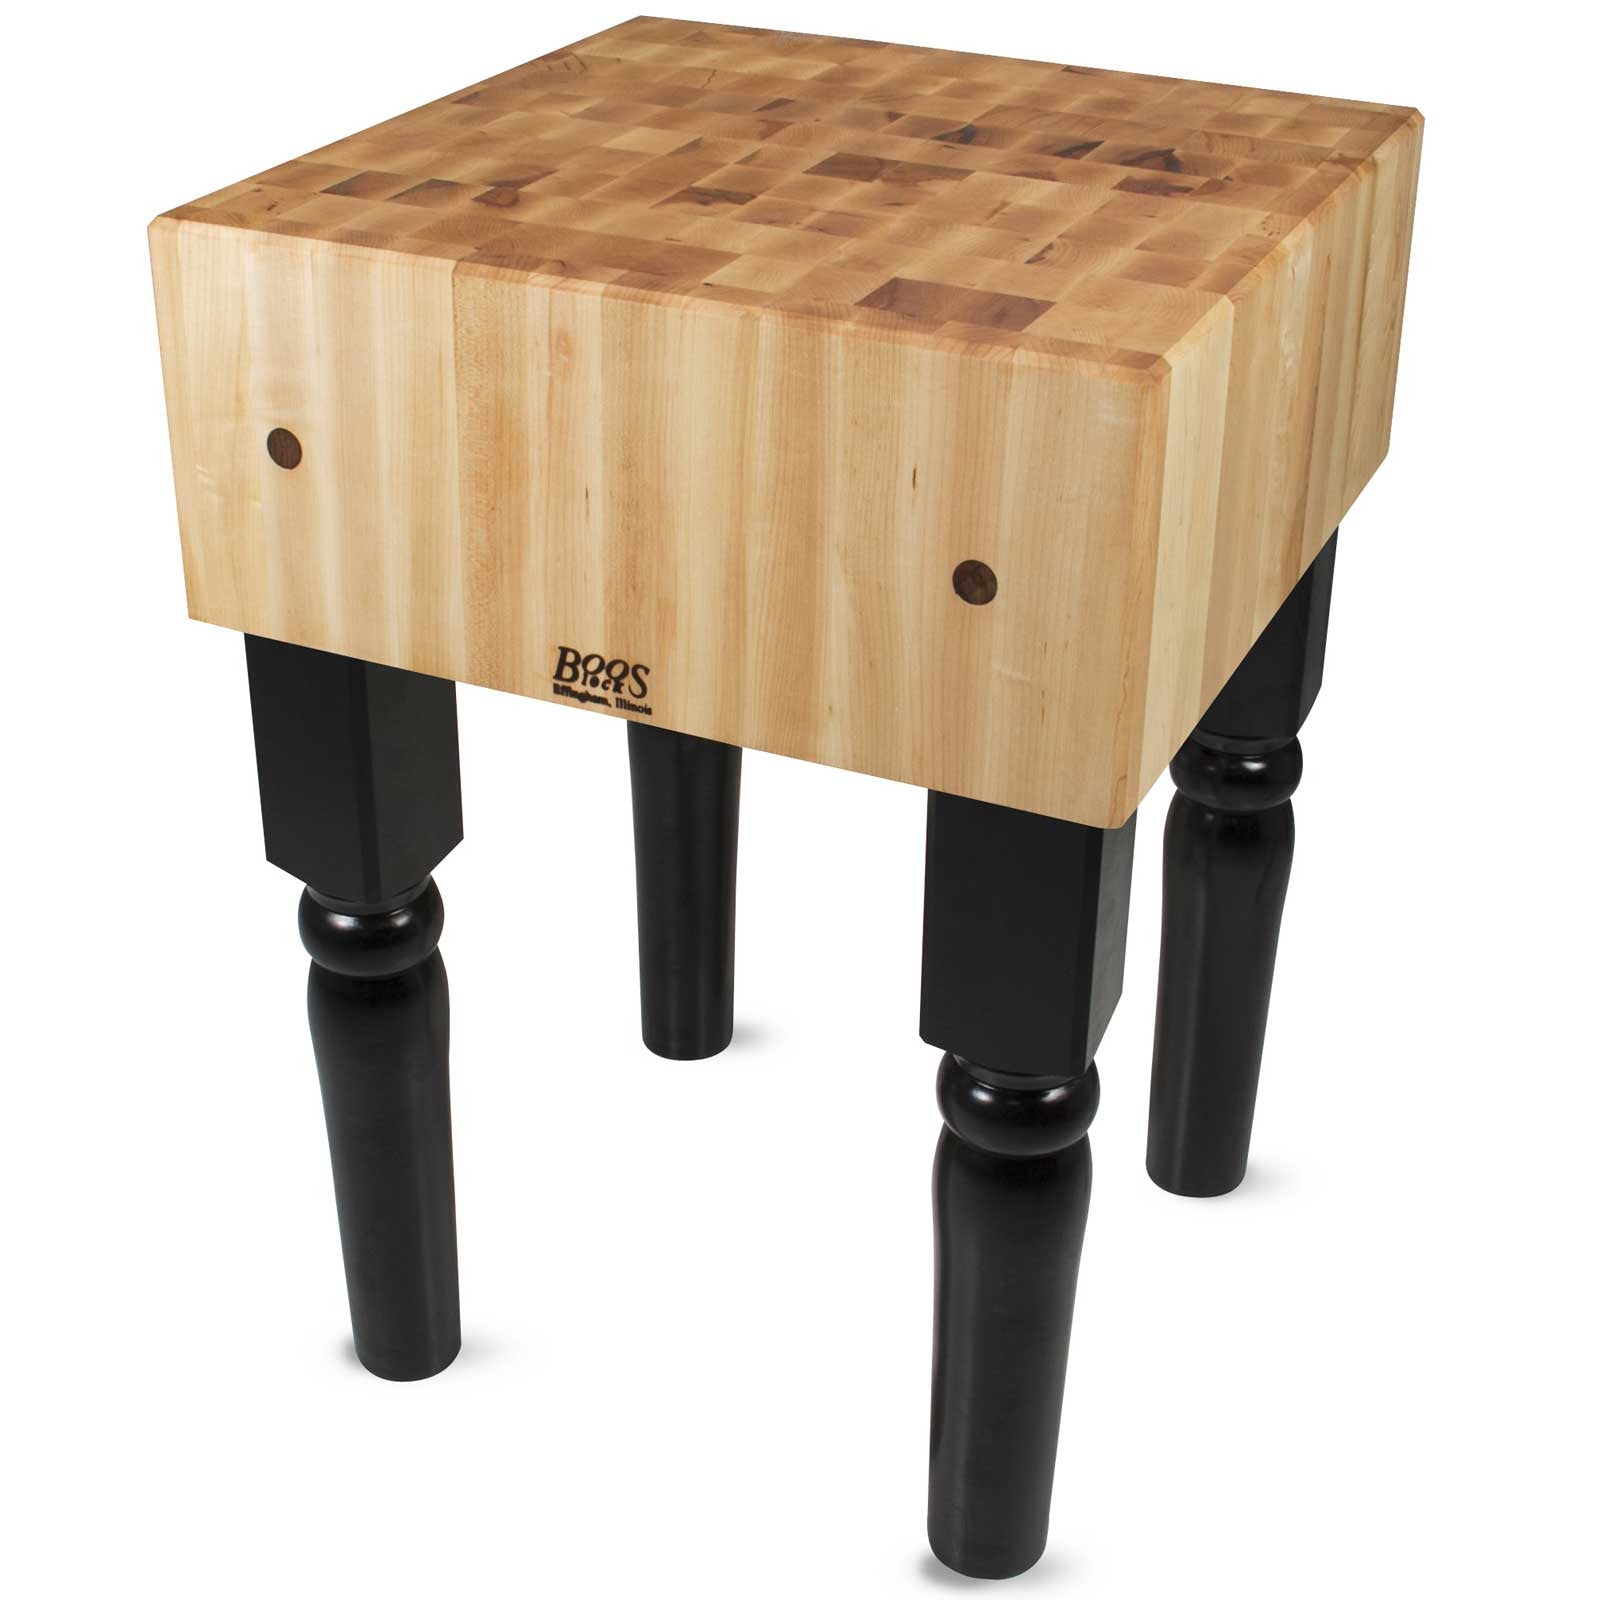 "John Boos 30"" x 24"" x 10"" Maple Top AB Butcher Block"